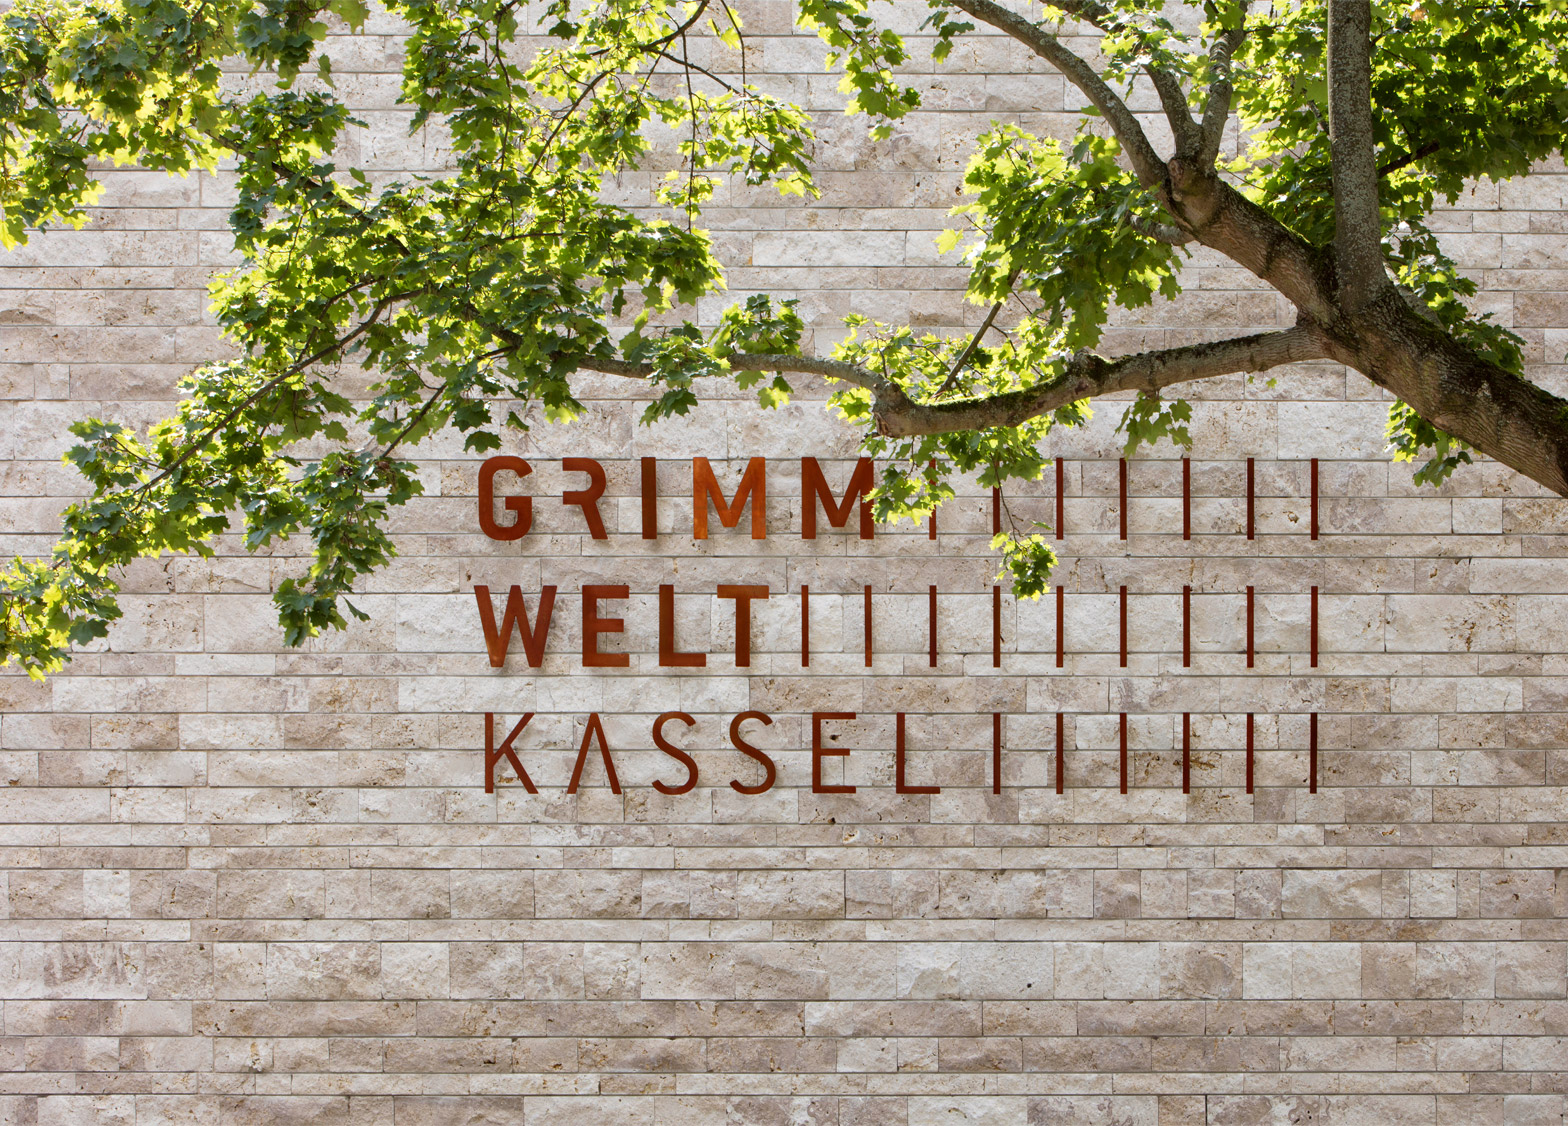 Museum Grimmwelt by Kada Wittfeld Architecture, Germany